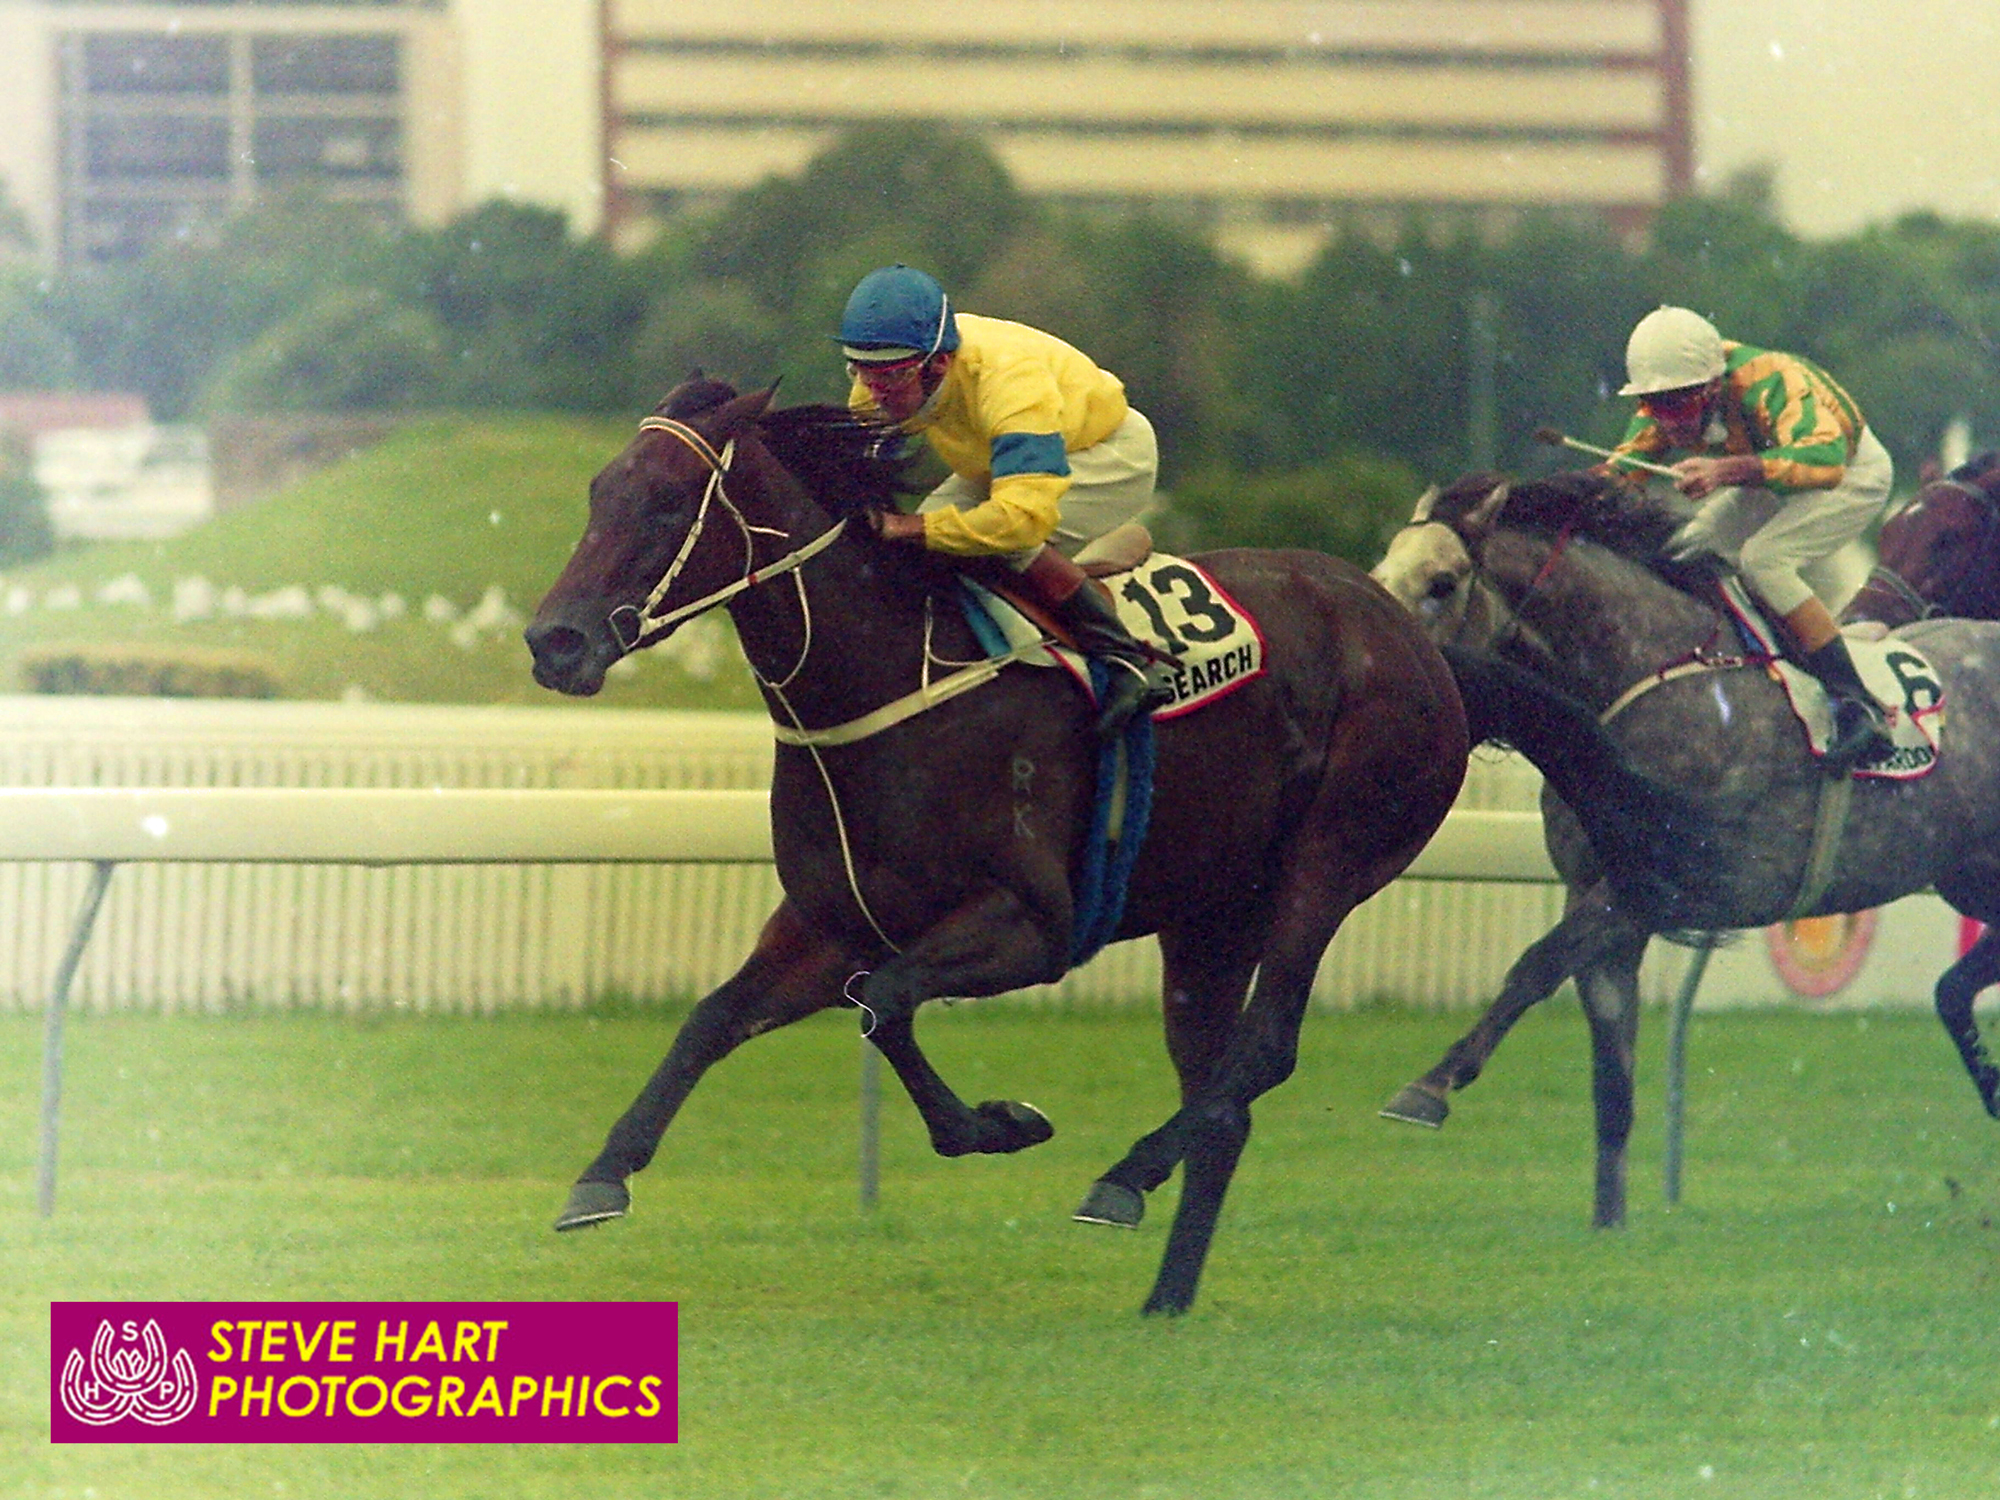 Image courtesy Steve Hart Photographics - Another angle of Research defeating Royal Pardon in the AJC Derby.